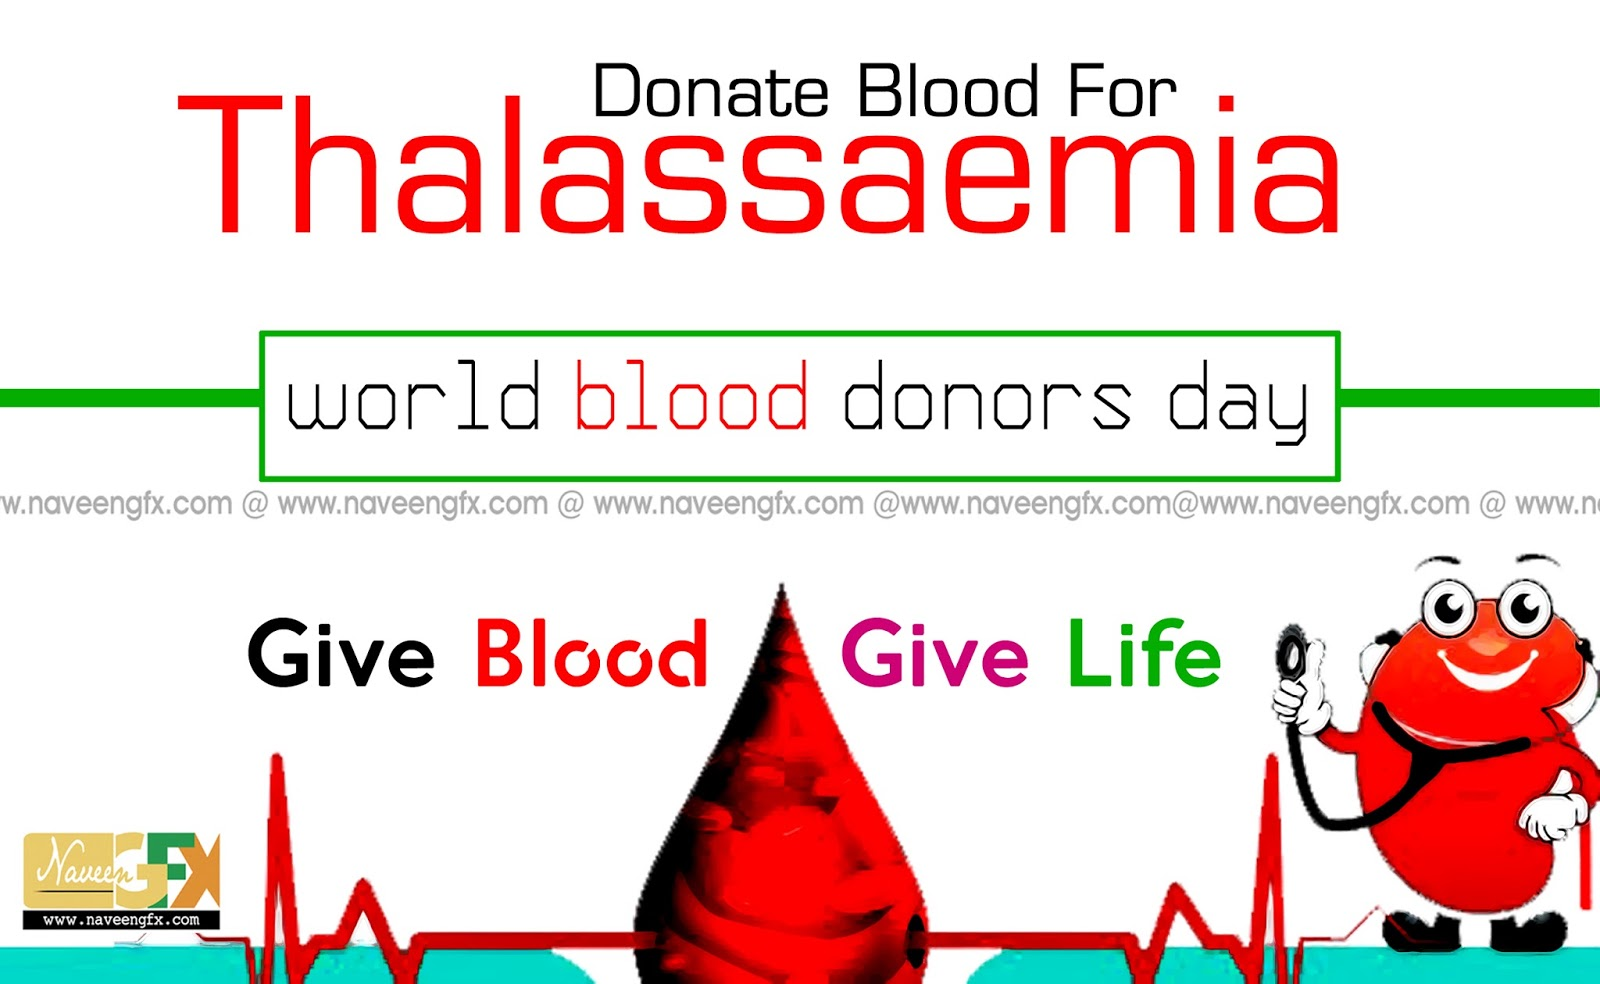 essay on blood donation Blood donation is a voluntary practice that helps those in need of blood transfusion due to some accident or illness the most essential body fluid, excessive blood loss can cause an untimely death if the need is not fulfilled immediately.